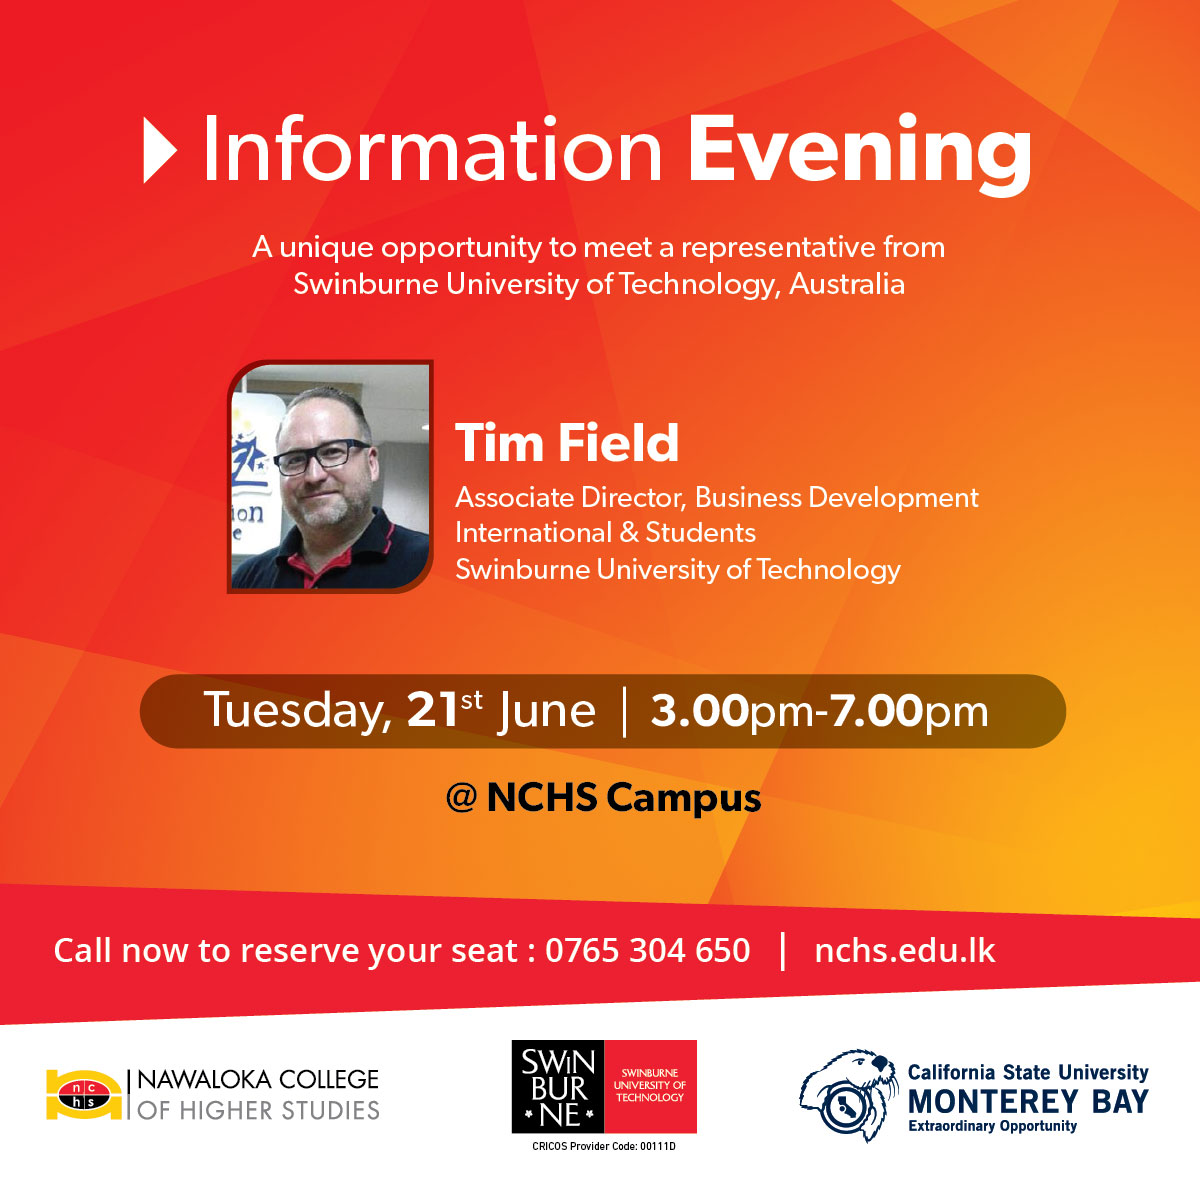 Nawaloka College of Higher Studies